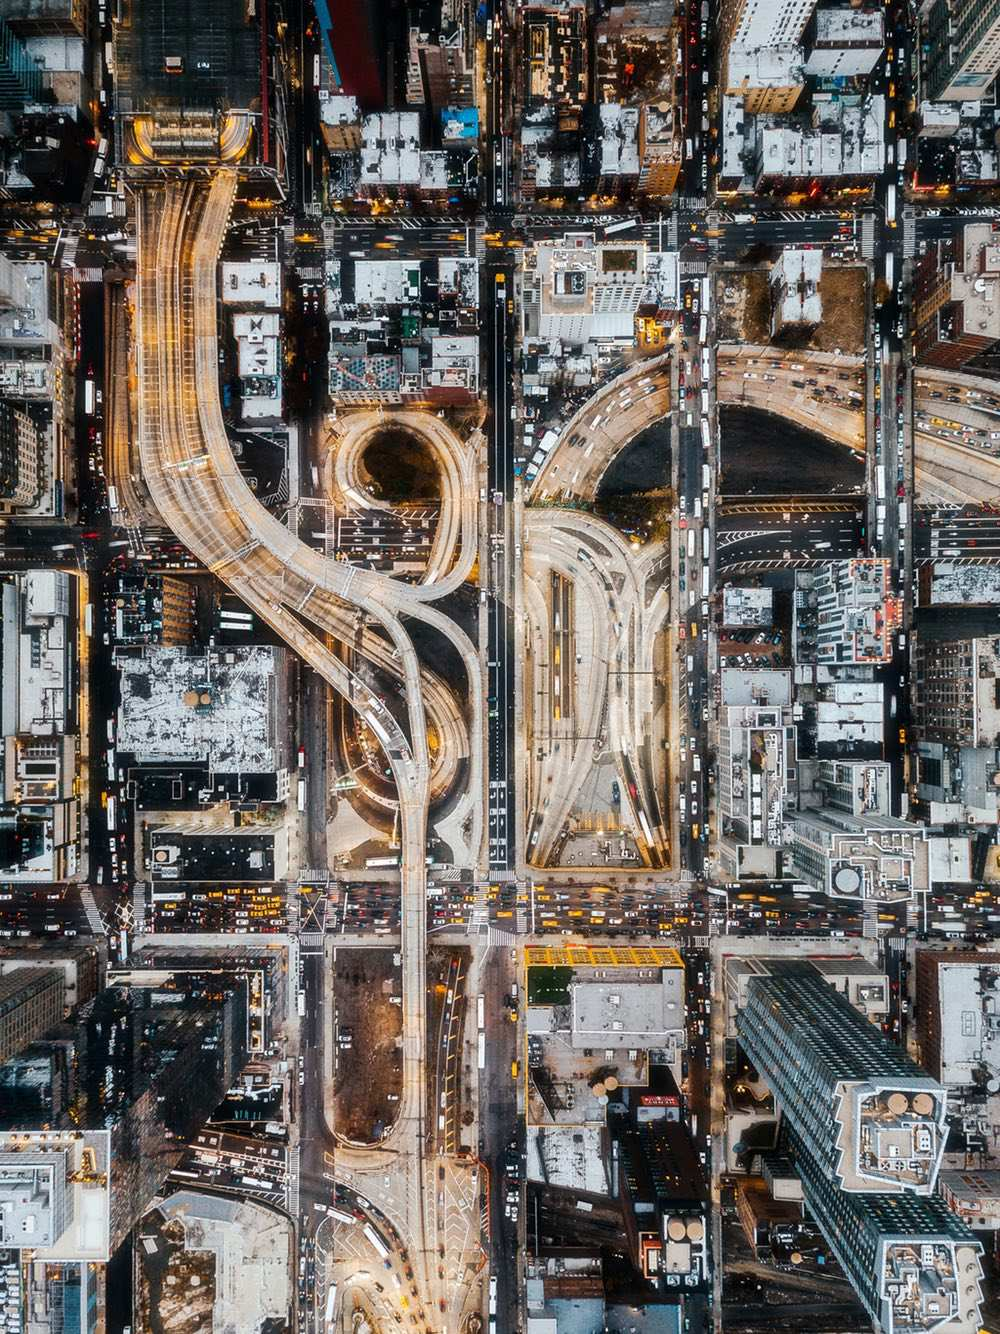 Port Authority Bus Terminal - Amazing drone photos of New York City looking straight down 0005